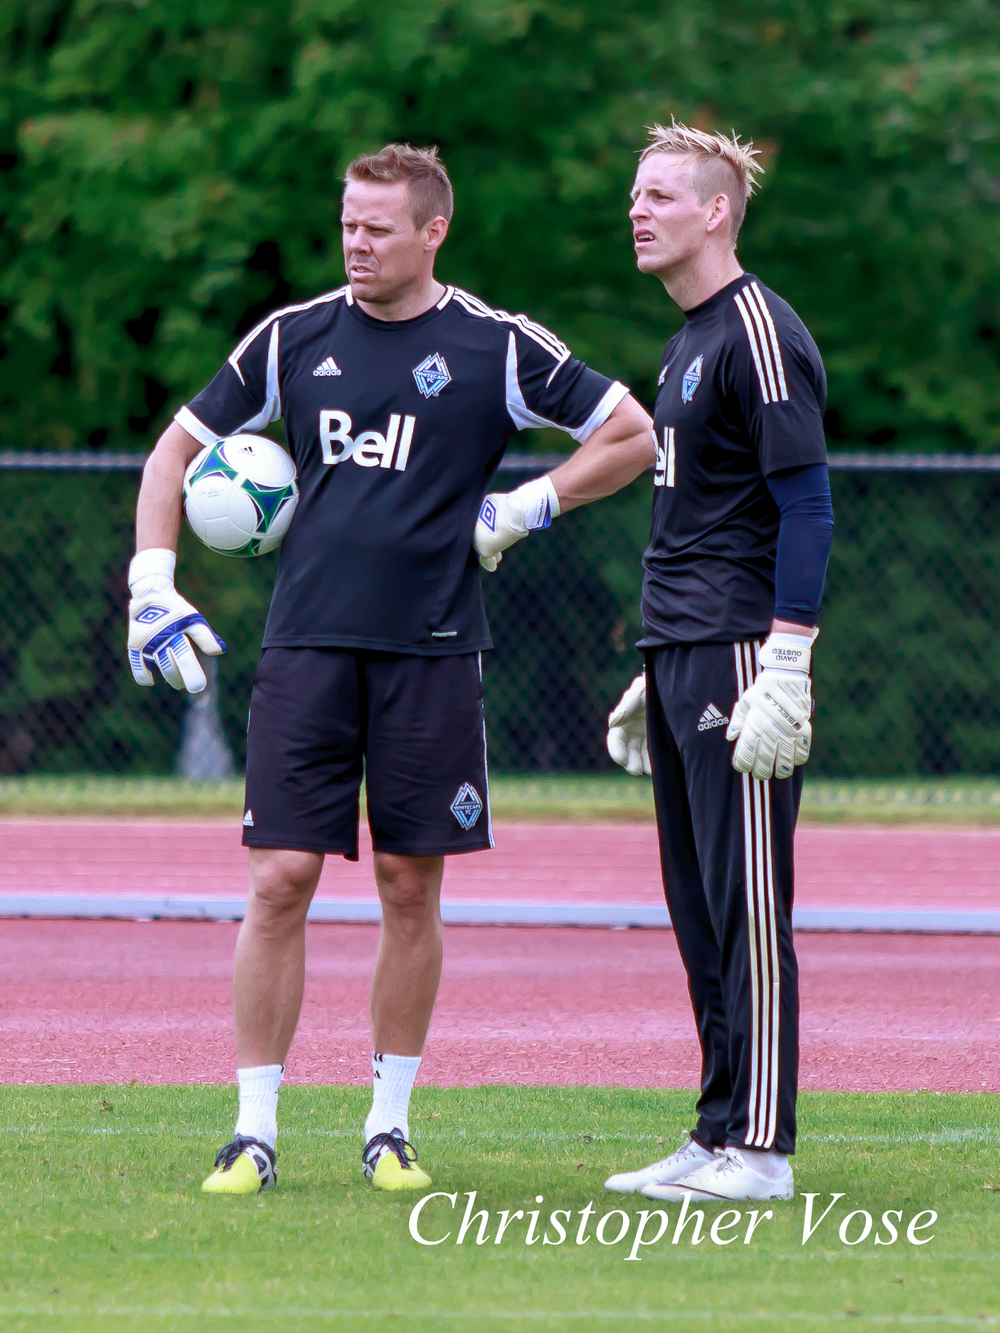 Marius Røvdeand David Ousted practice their confused looks at the National Soccer Development Centre on 24 June 2013.